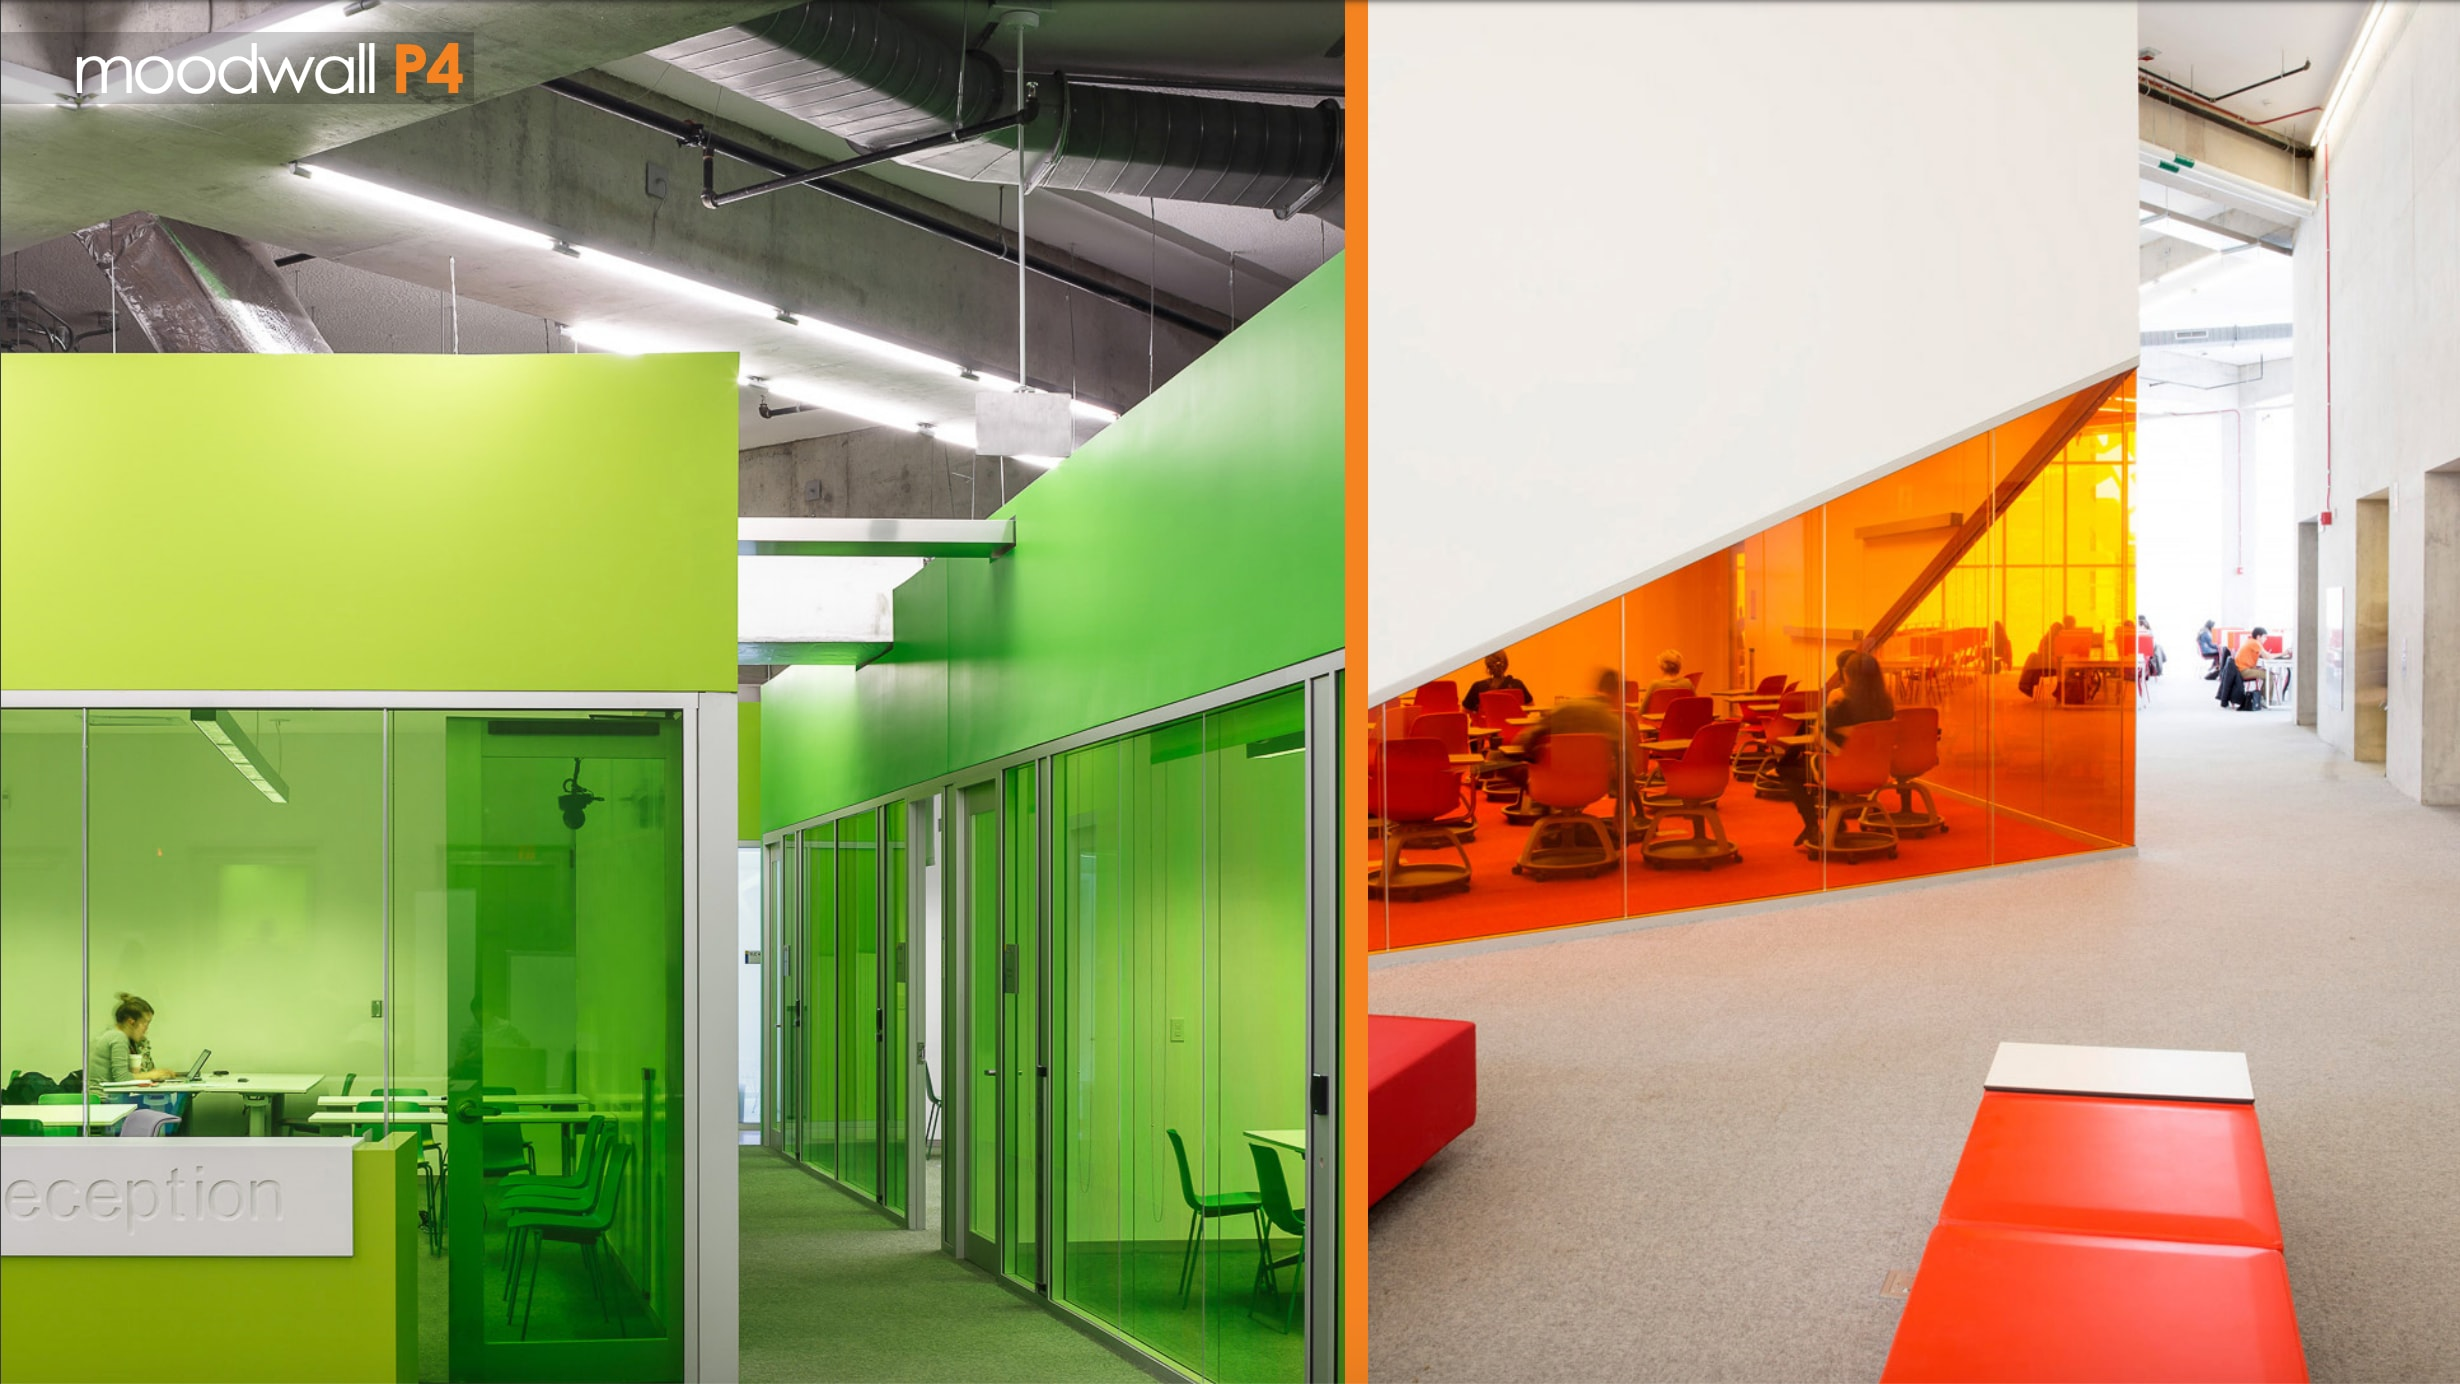 A side-by-side image of two floors in the Ryerson Learning Centre in Toronto with green and red architectural glass walls.